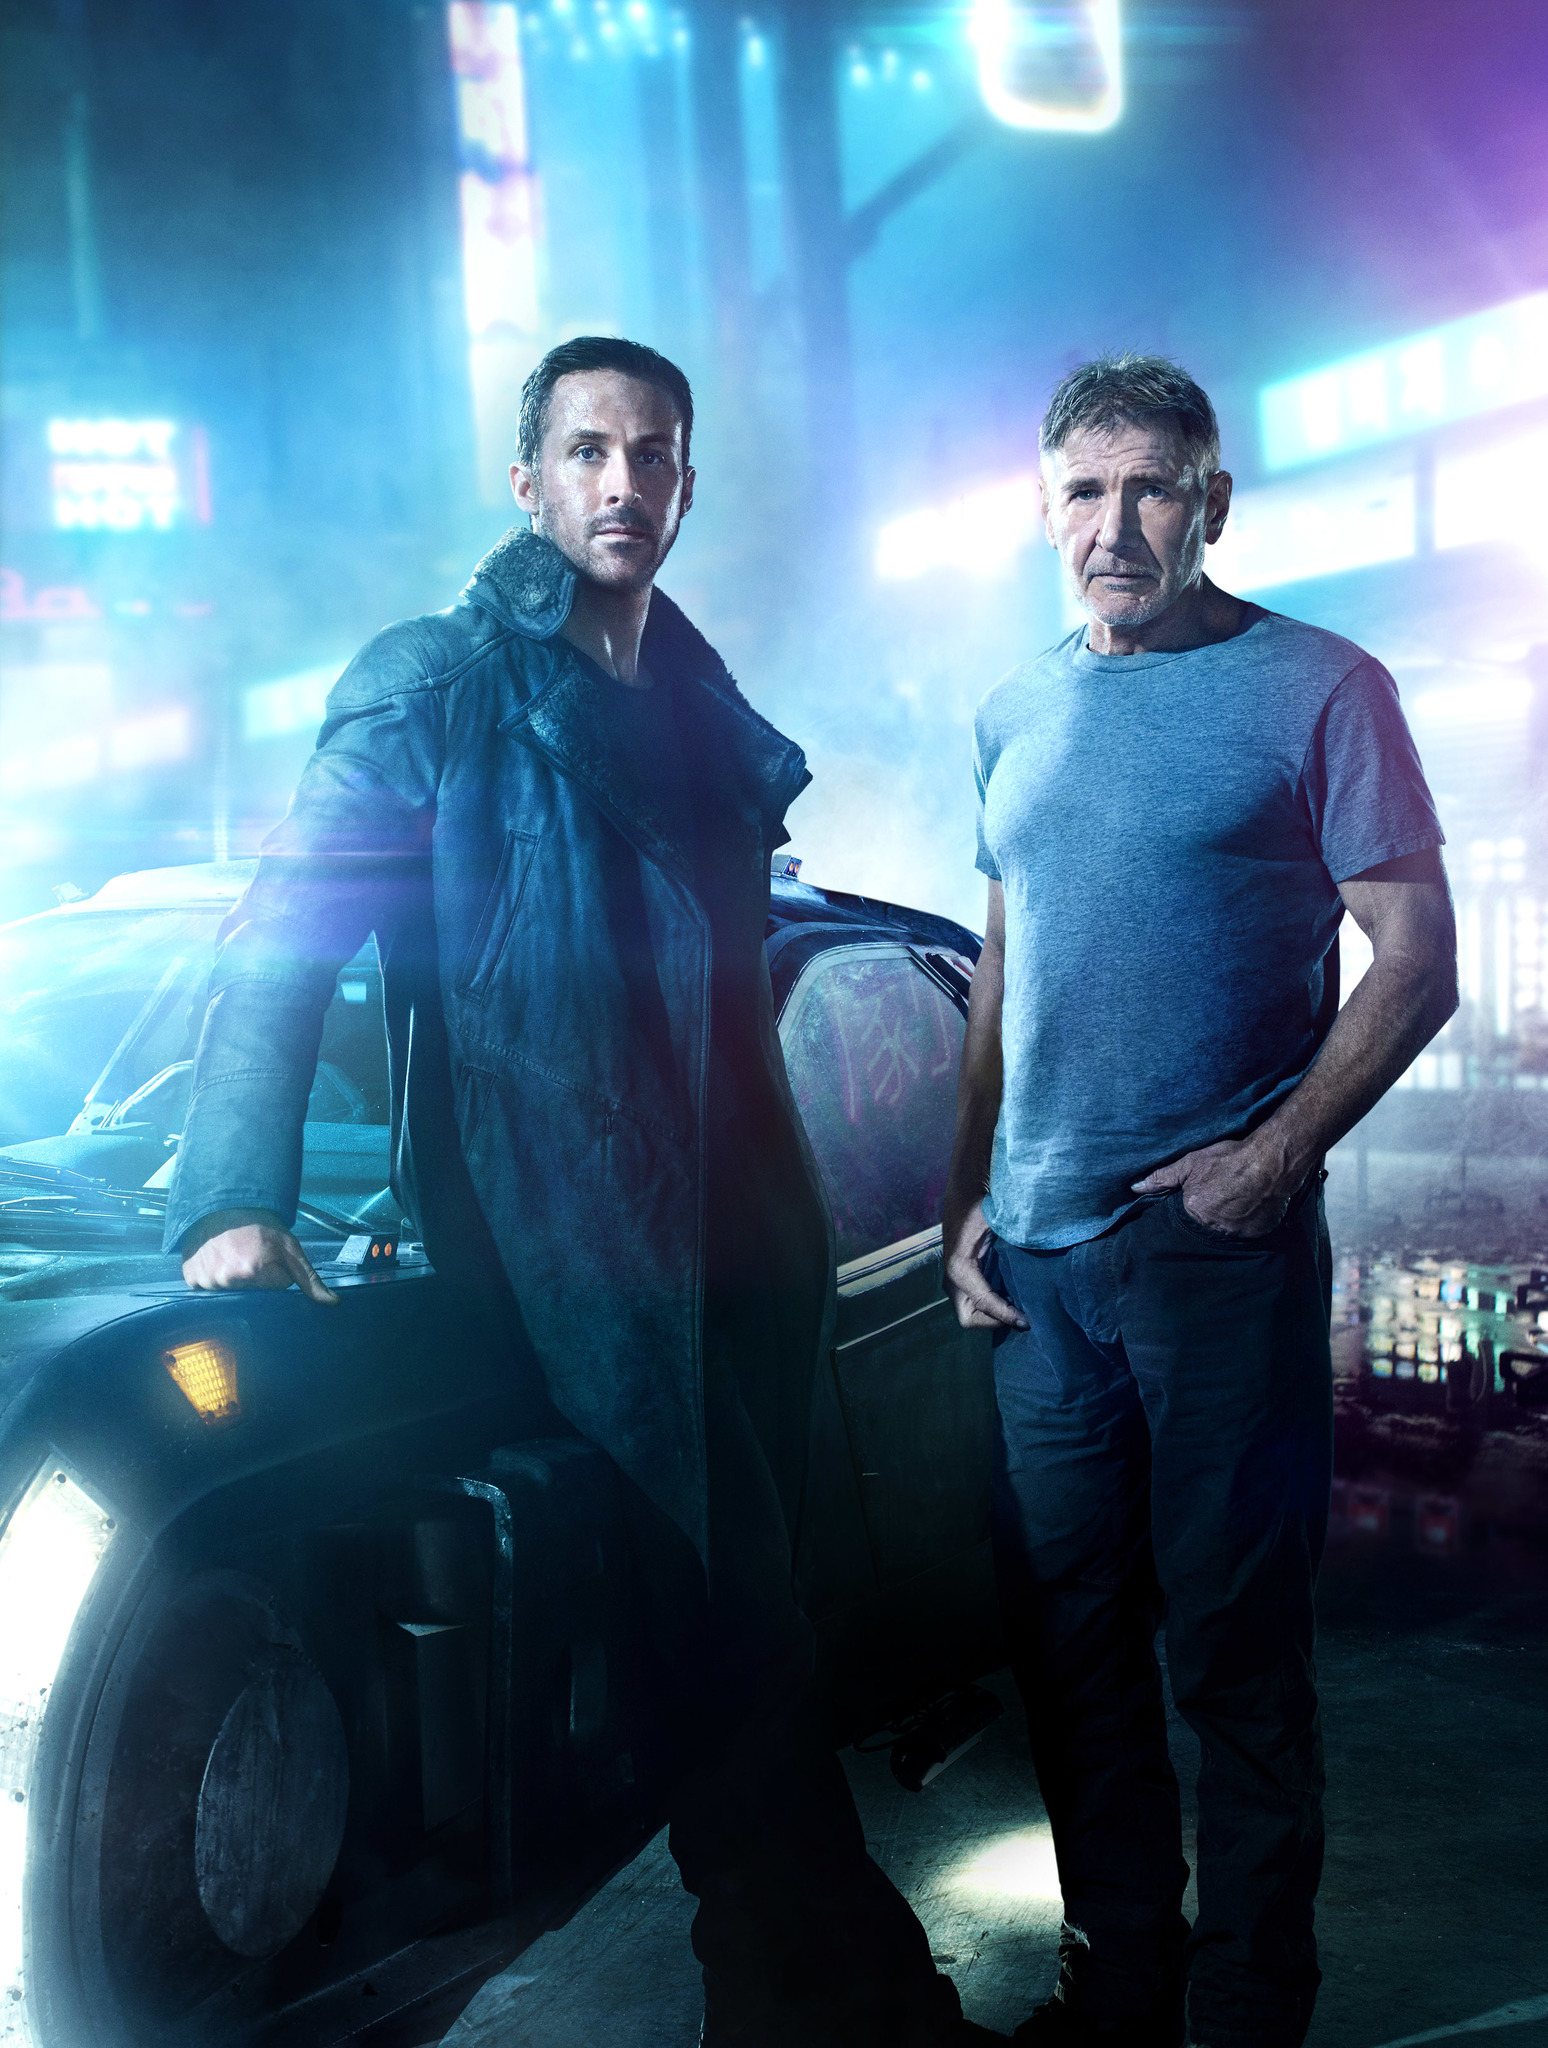 Harrison Ford and Ryan Gosling in Blade Runner 2049 (2017)